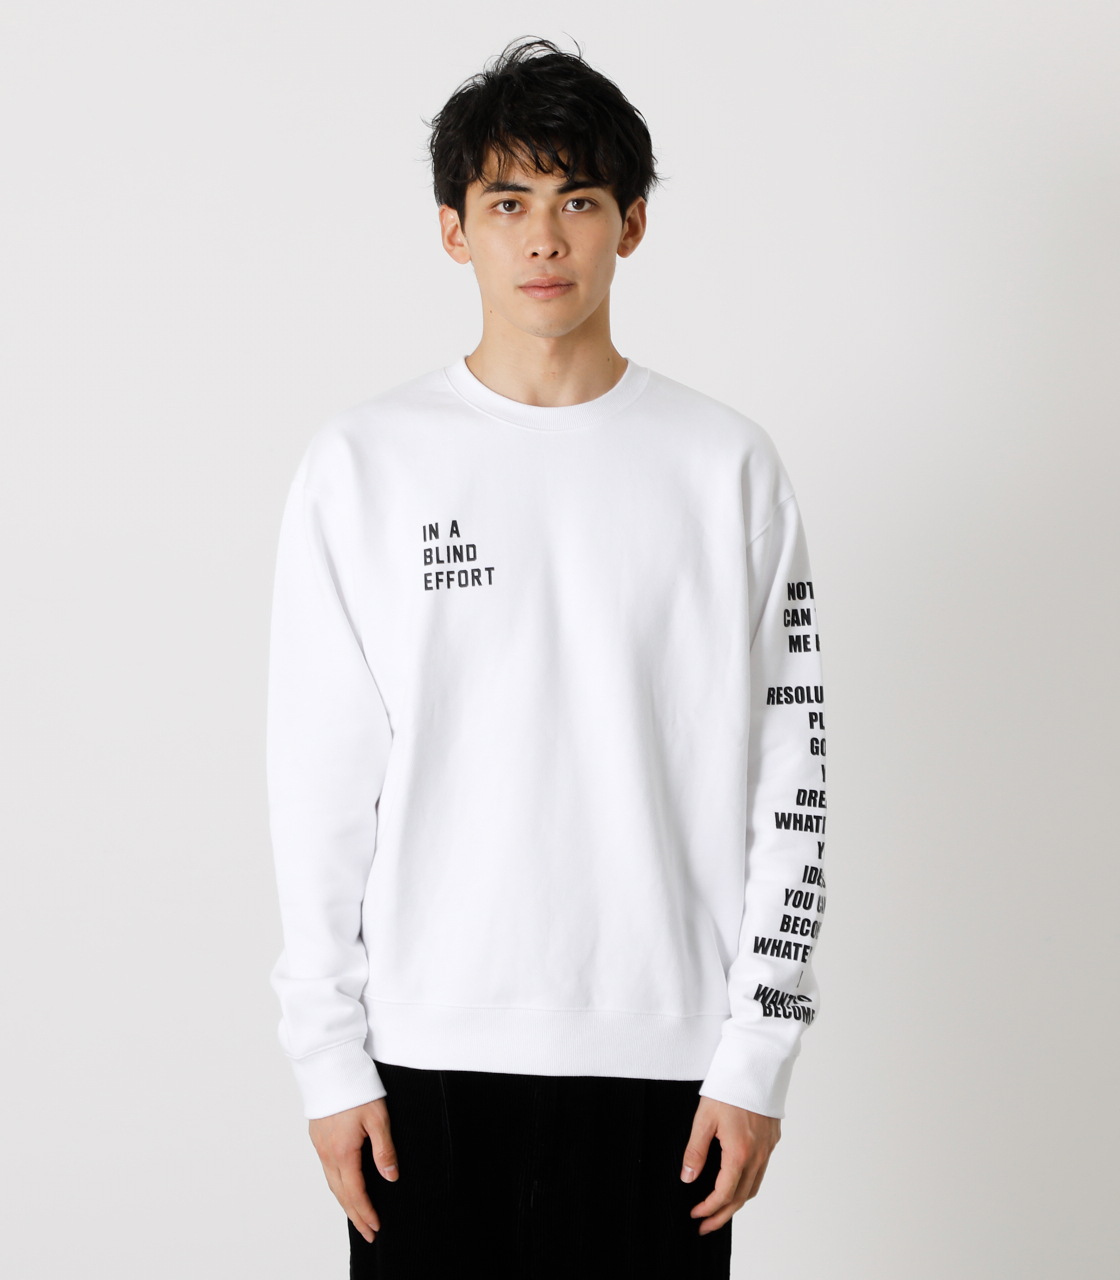 ONE ARM MESSAGE PULLOVER/ワンアームメッセージプルオーバー 詳細画像 WHT 5